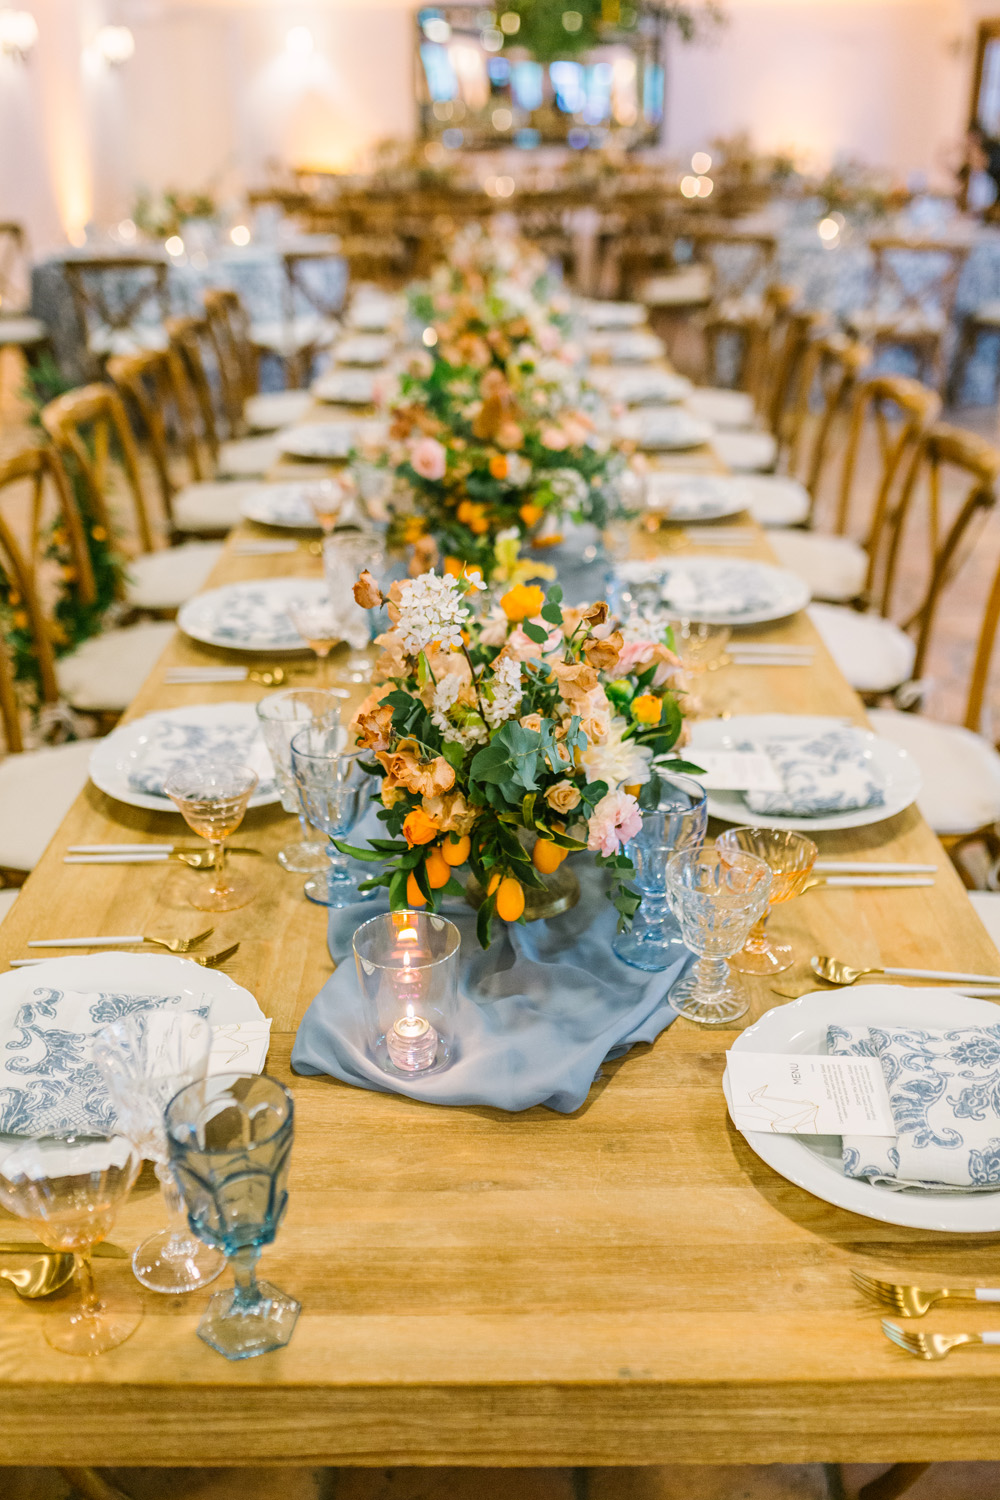 Orange County wedding planner creates this stunning table scape for a southern california couple at a popular wedding venue in the heart of Orange county at Rancho Las Lomas.